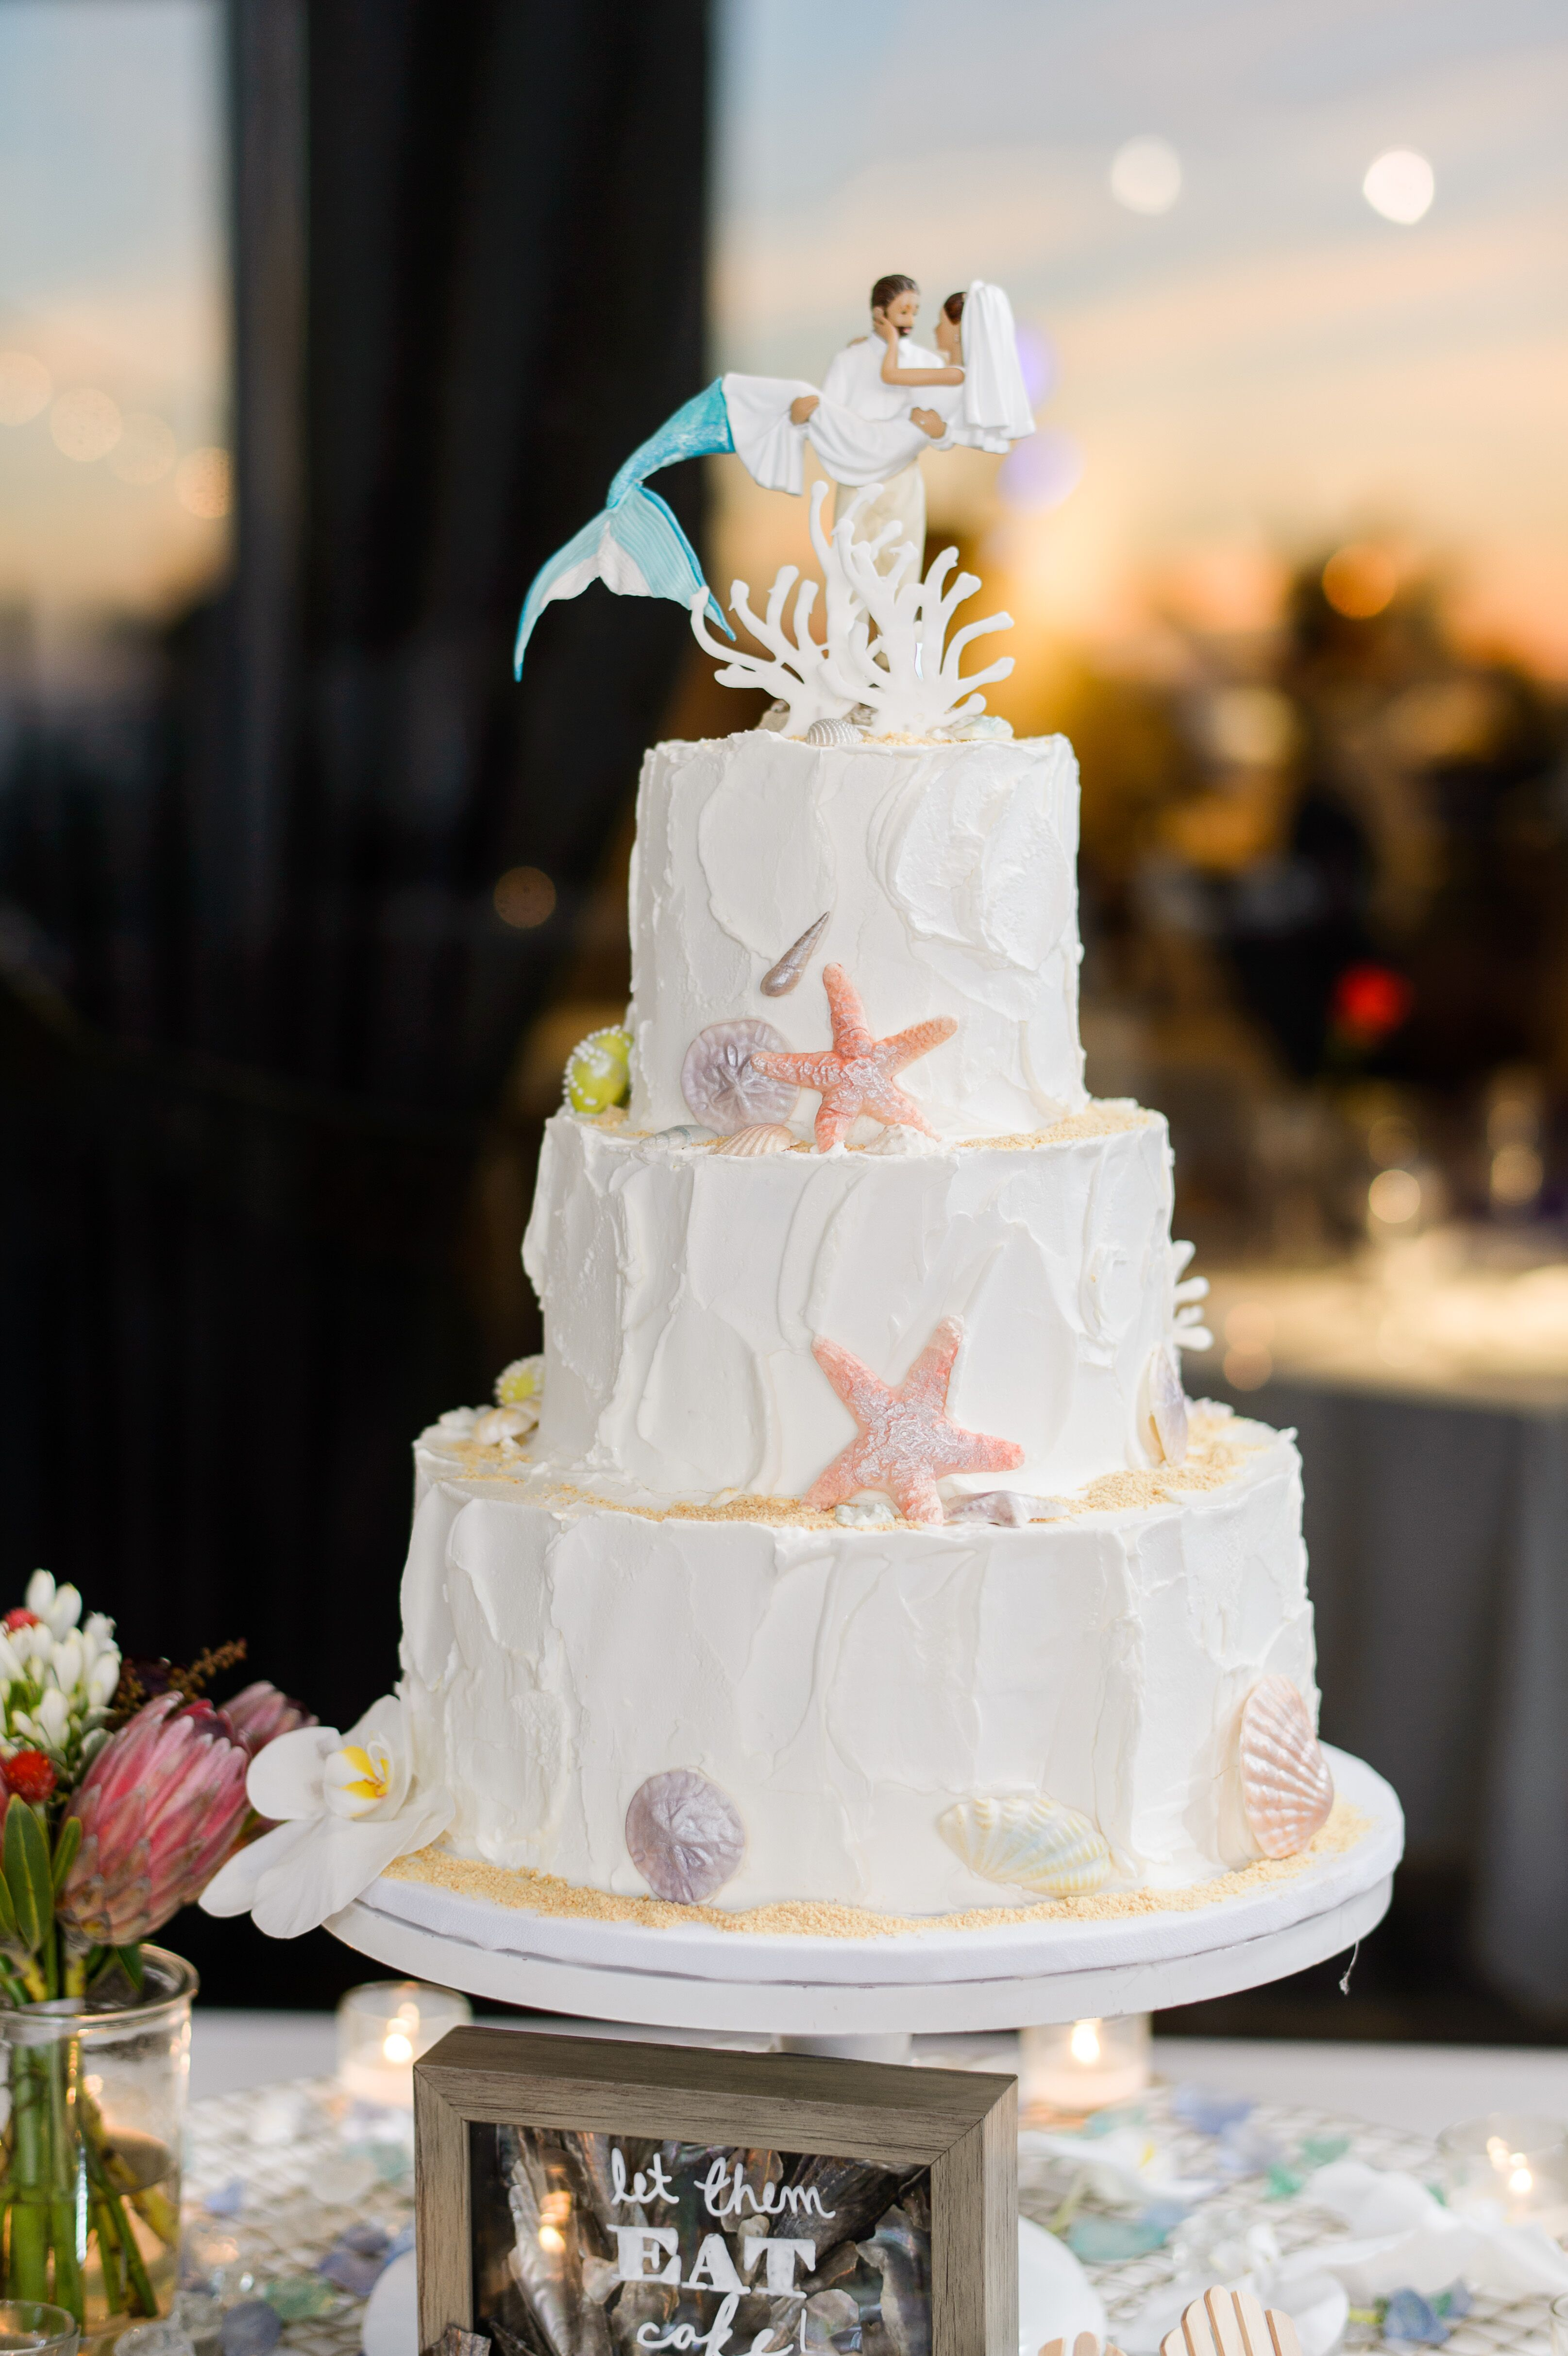 Beach Themed Wedding Cake With Mermaid Cake Topper